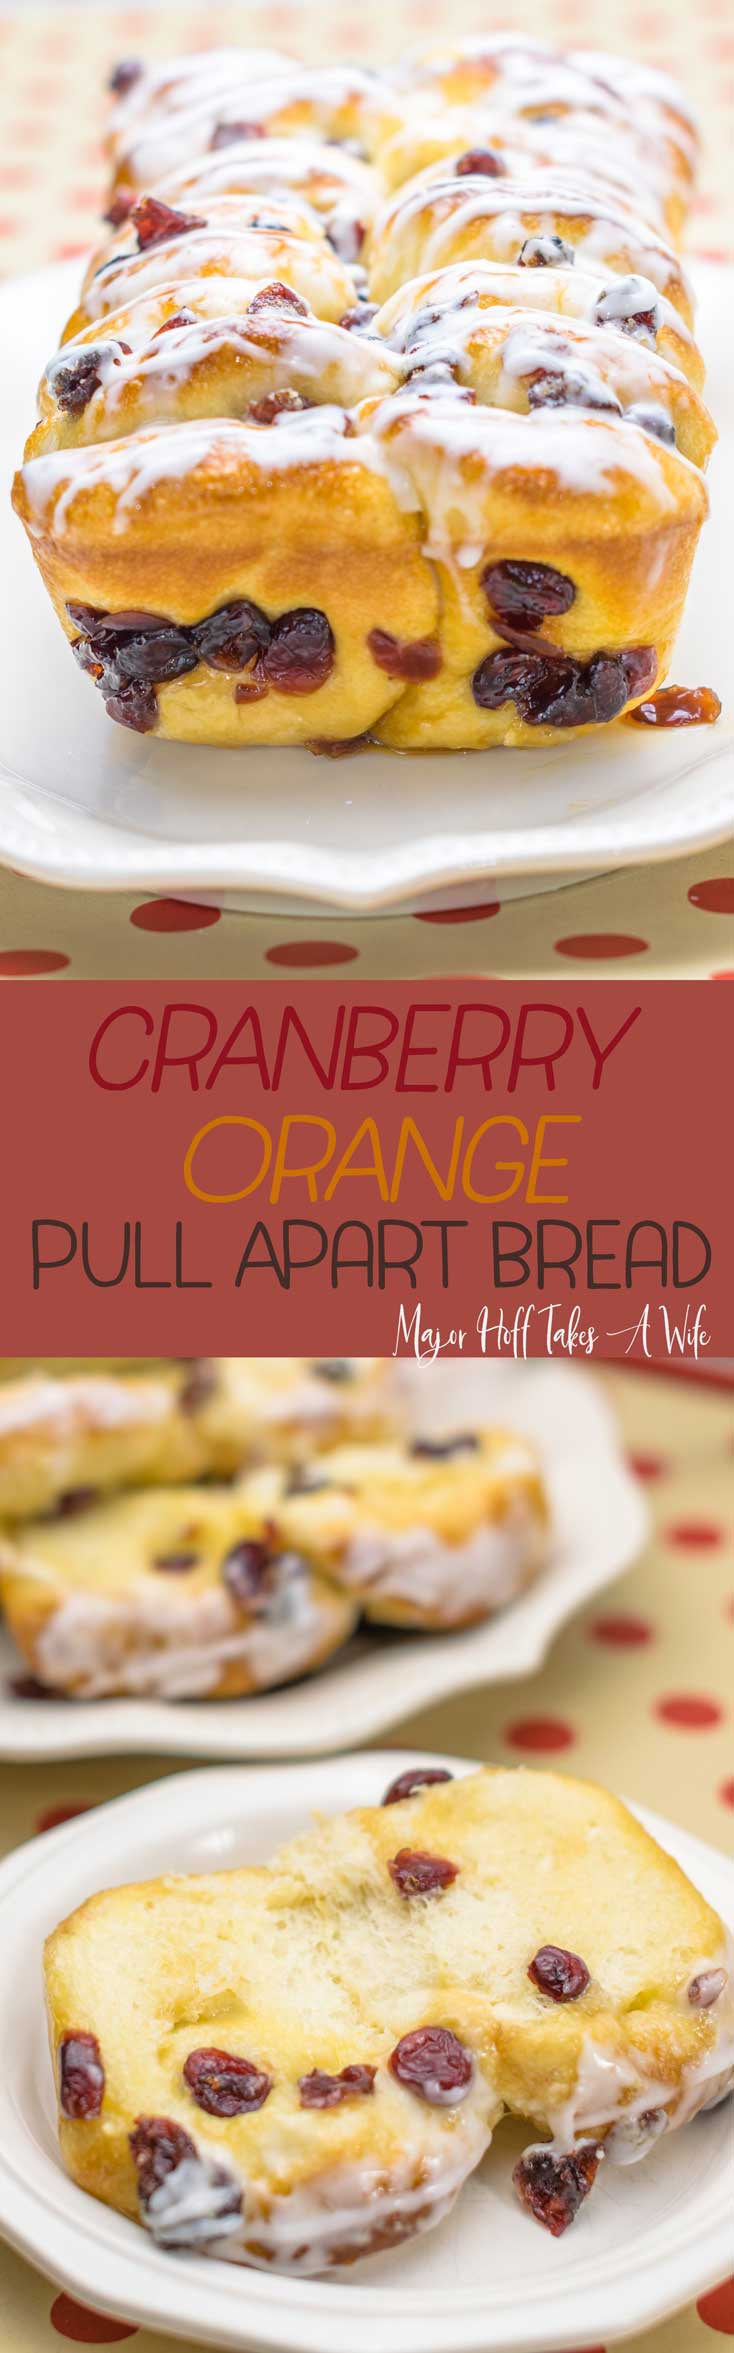 Pull apart cranberry orange bread! This easy to make dessert bread features frozen yeast rolls, brown sugar, orange juice and dried cranberries. #cranberry #quickbread #rhodesrolls #cranberrybread via @mrsmajorhoff